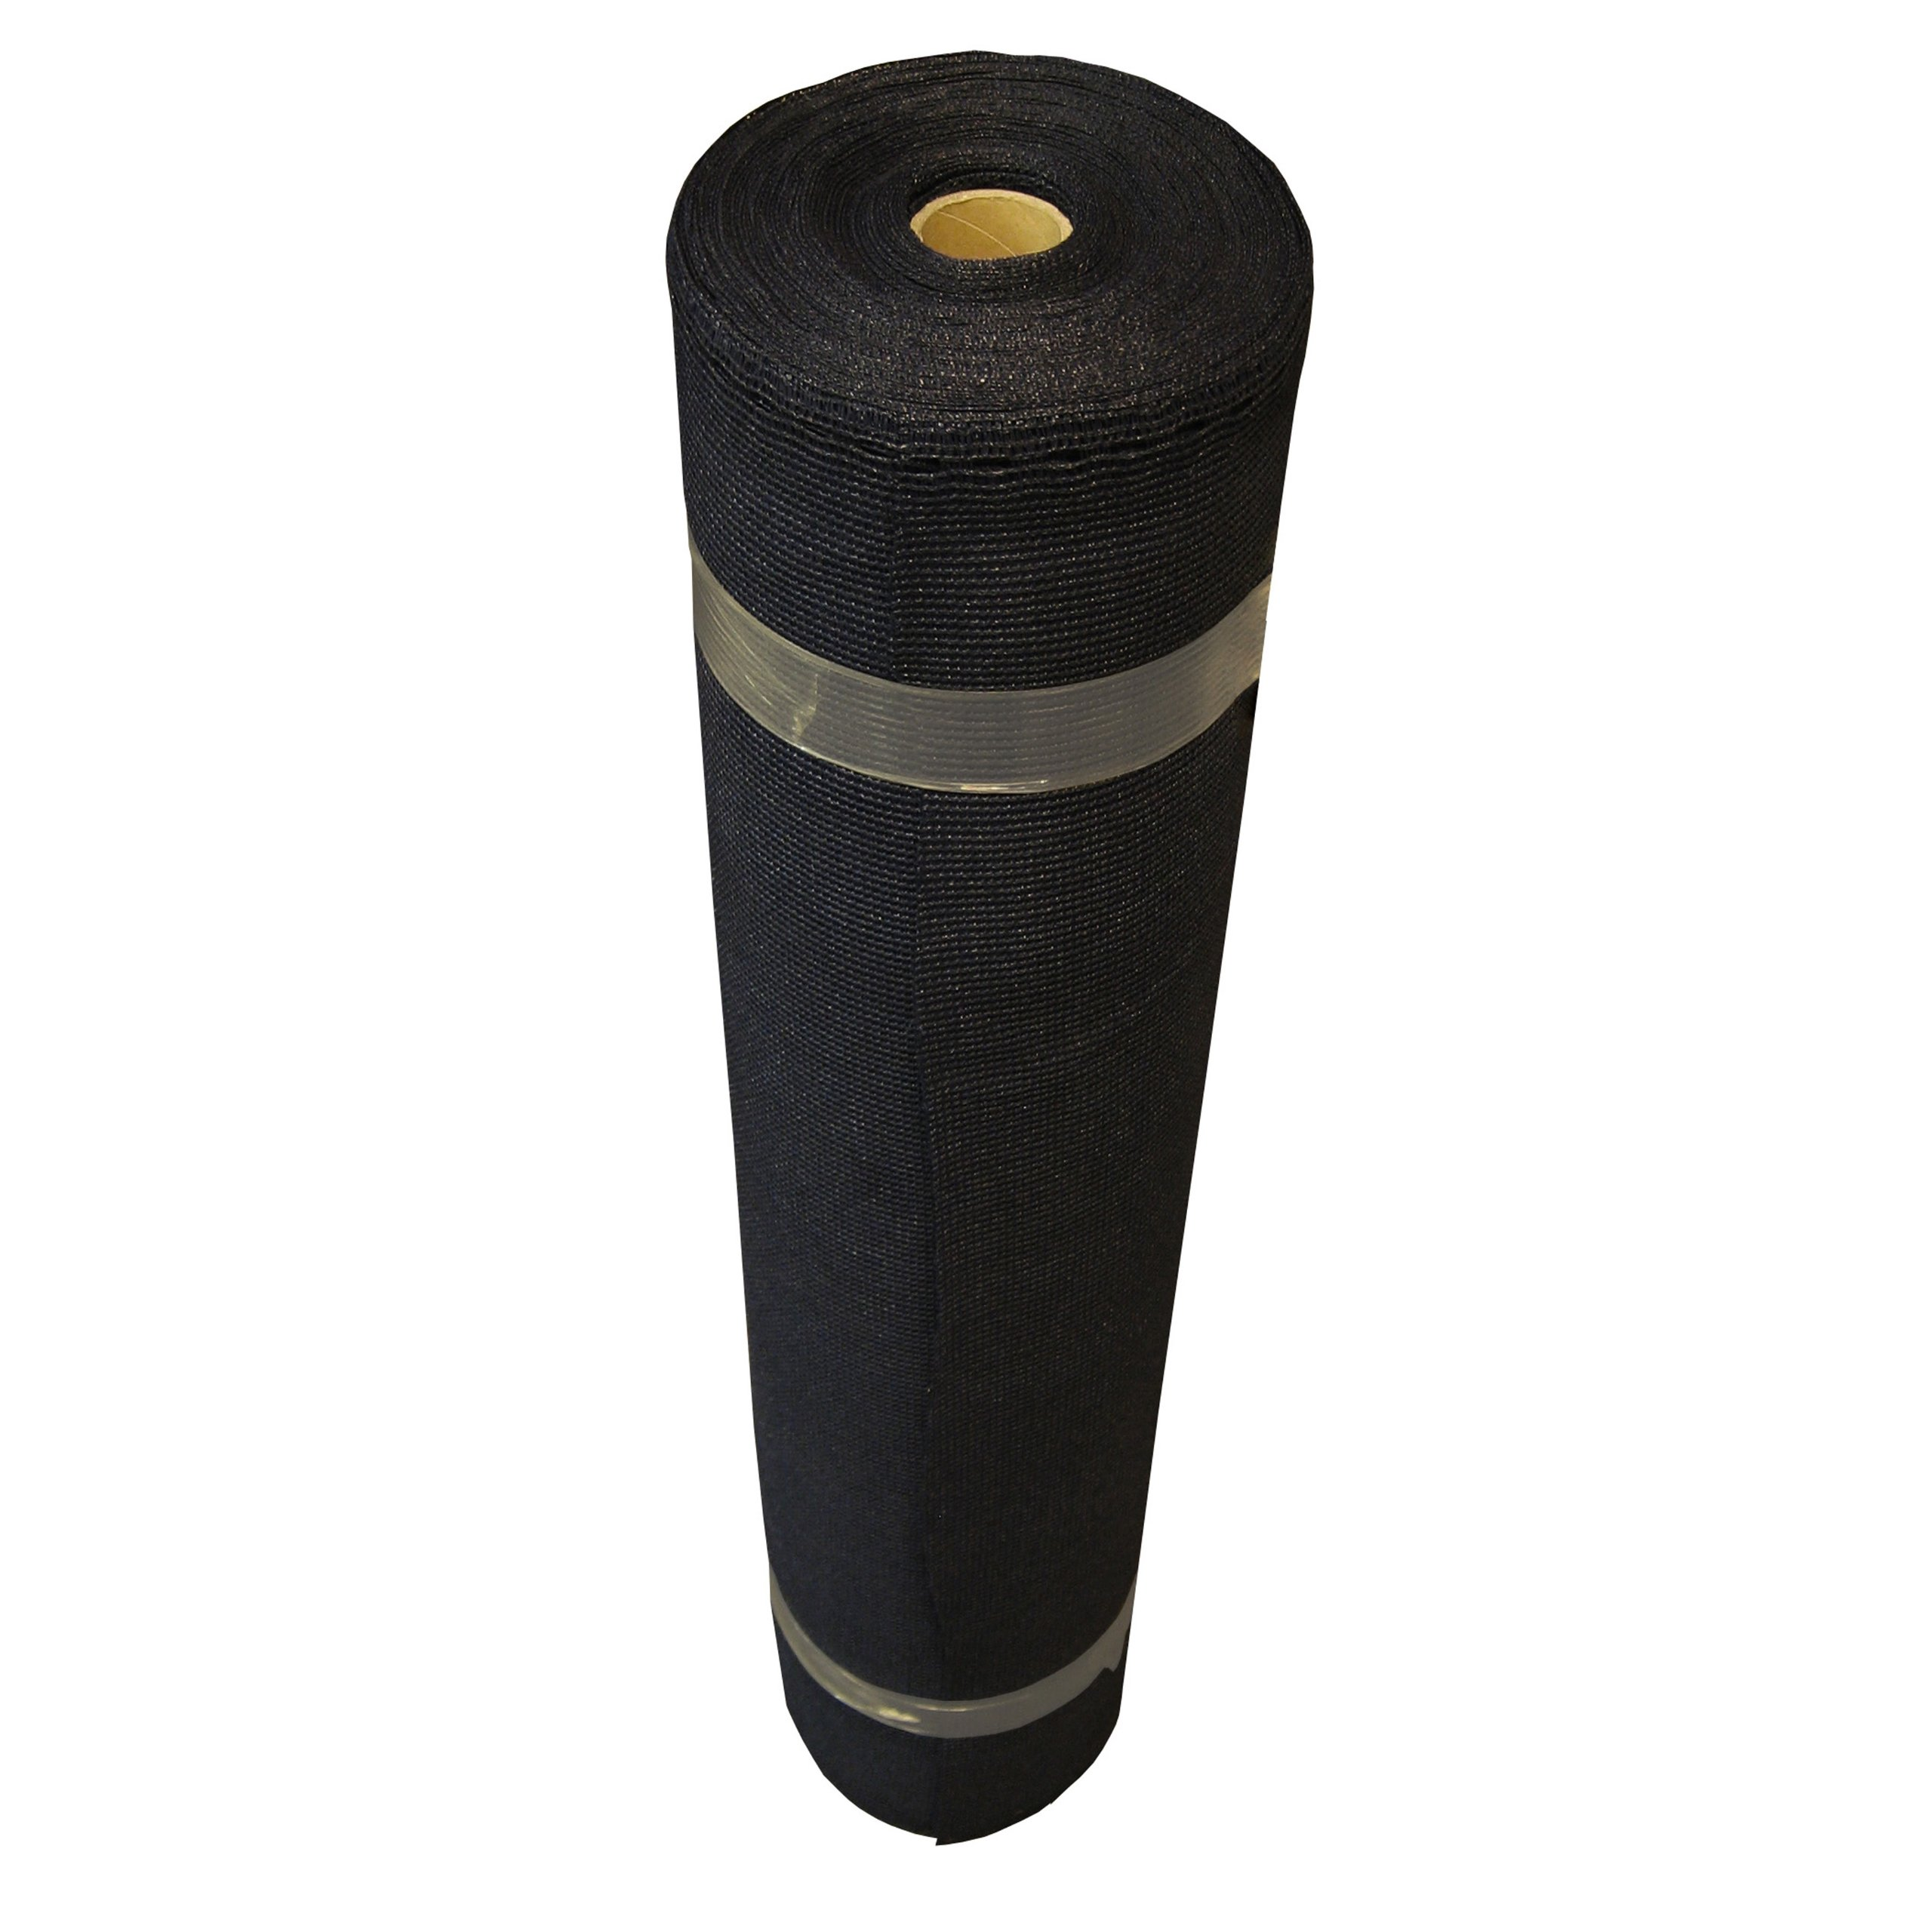 Coolaroo 300371 Outdoor or Exterior, (6' X 100'), Black Shade Fabric 50% UV Coverage for Gardening